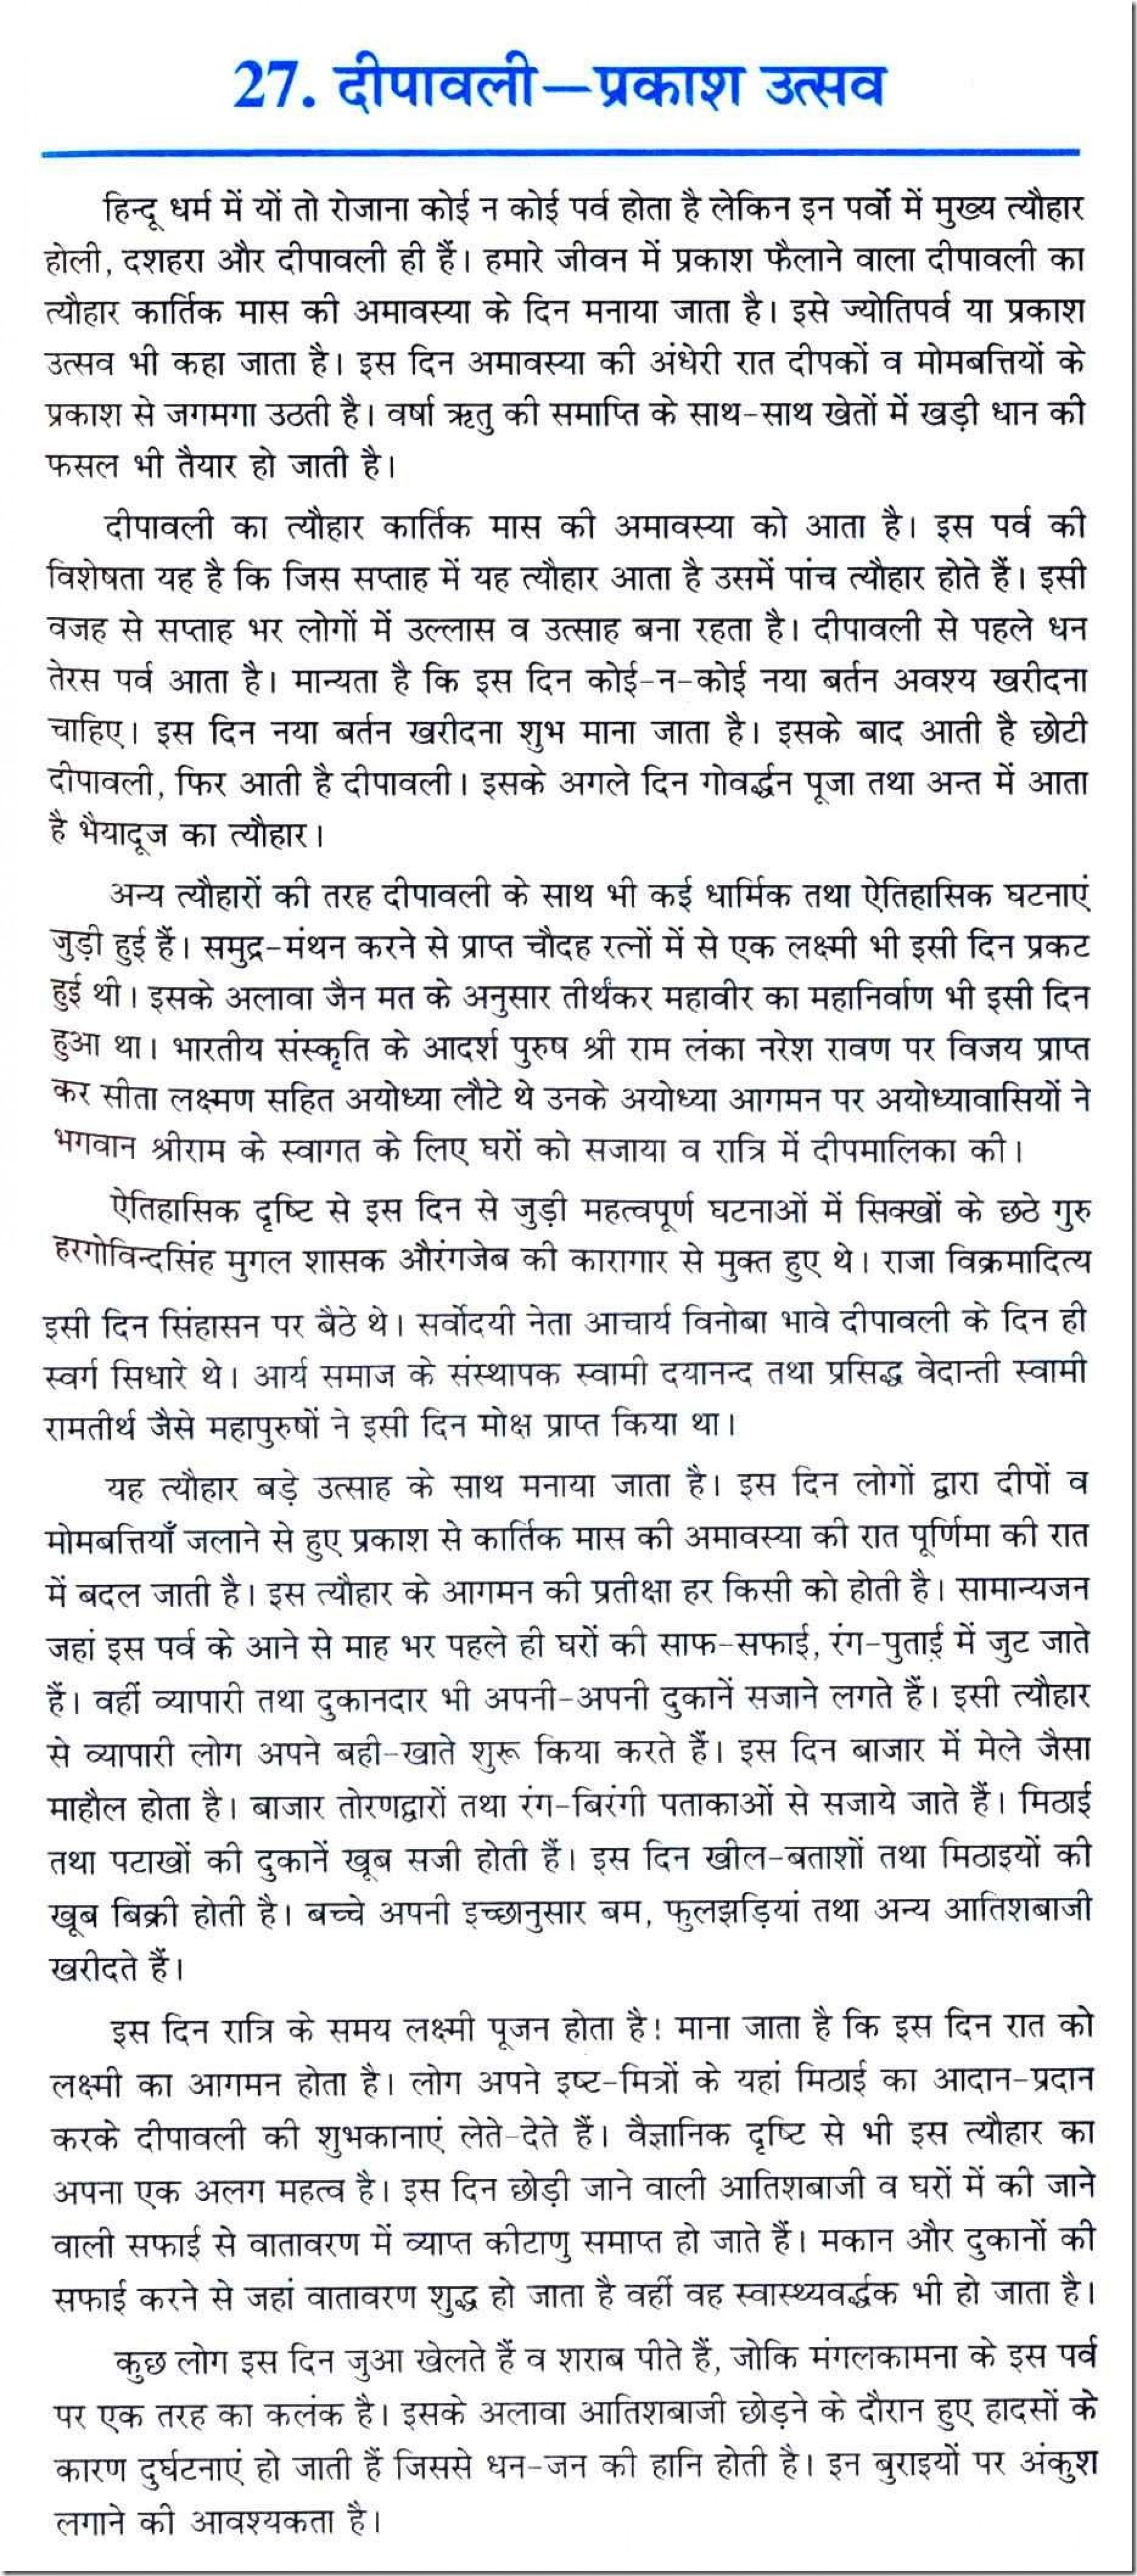 009 0020027 Thumb Essay Example For Diwali In Fantastic Hindi On 50 Words Class Short 3 1920